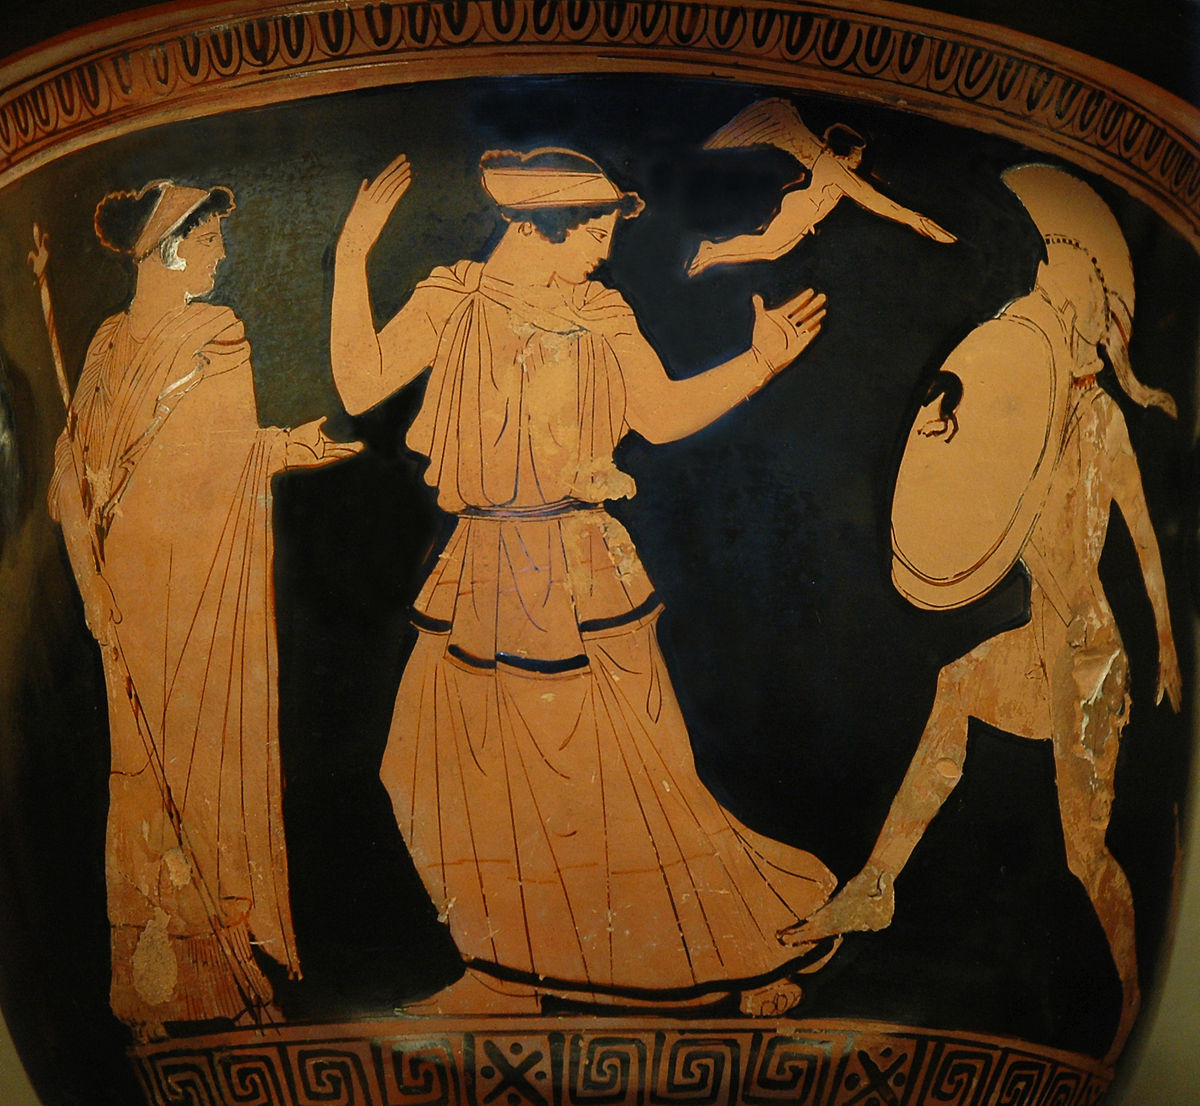 A literary analysis of women in ancient greece in lysistrata